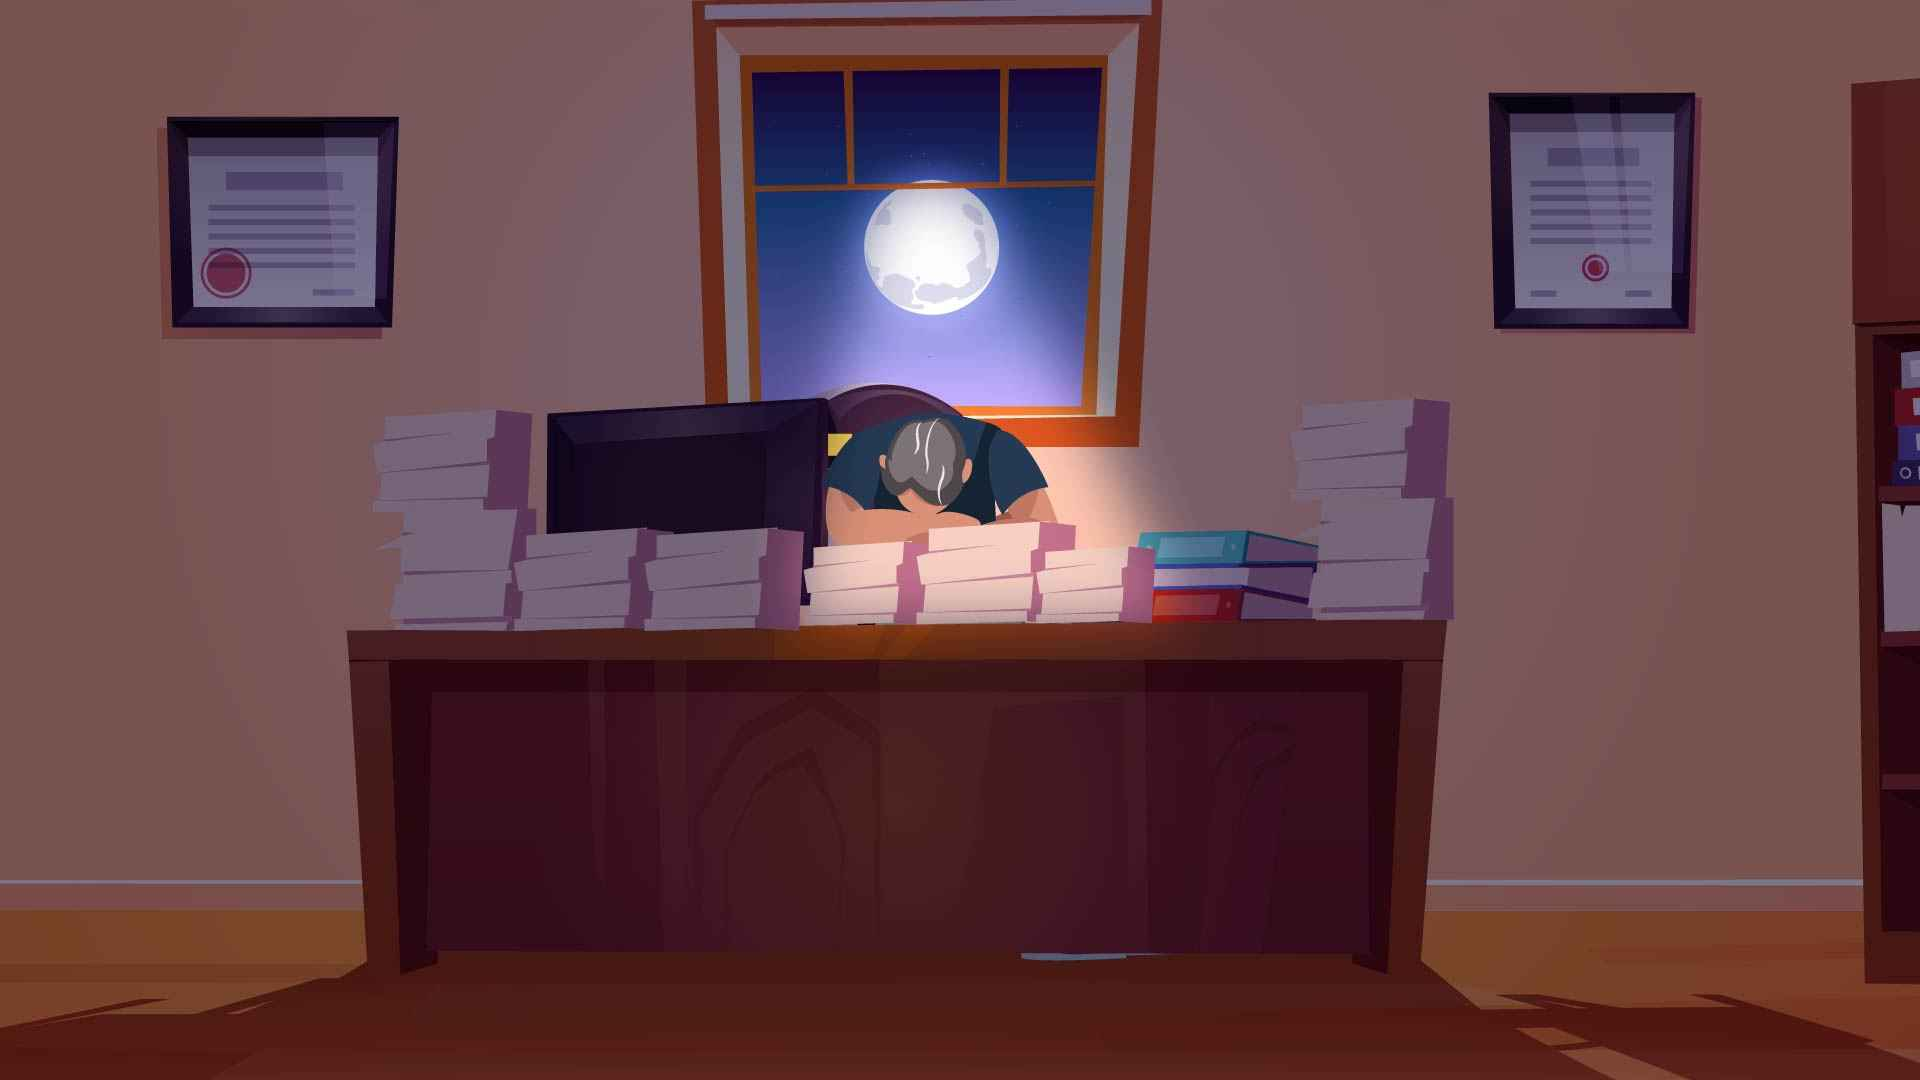 The man fell asleep reading books in an Animated Explanatory Video